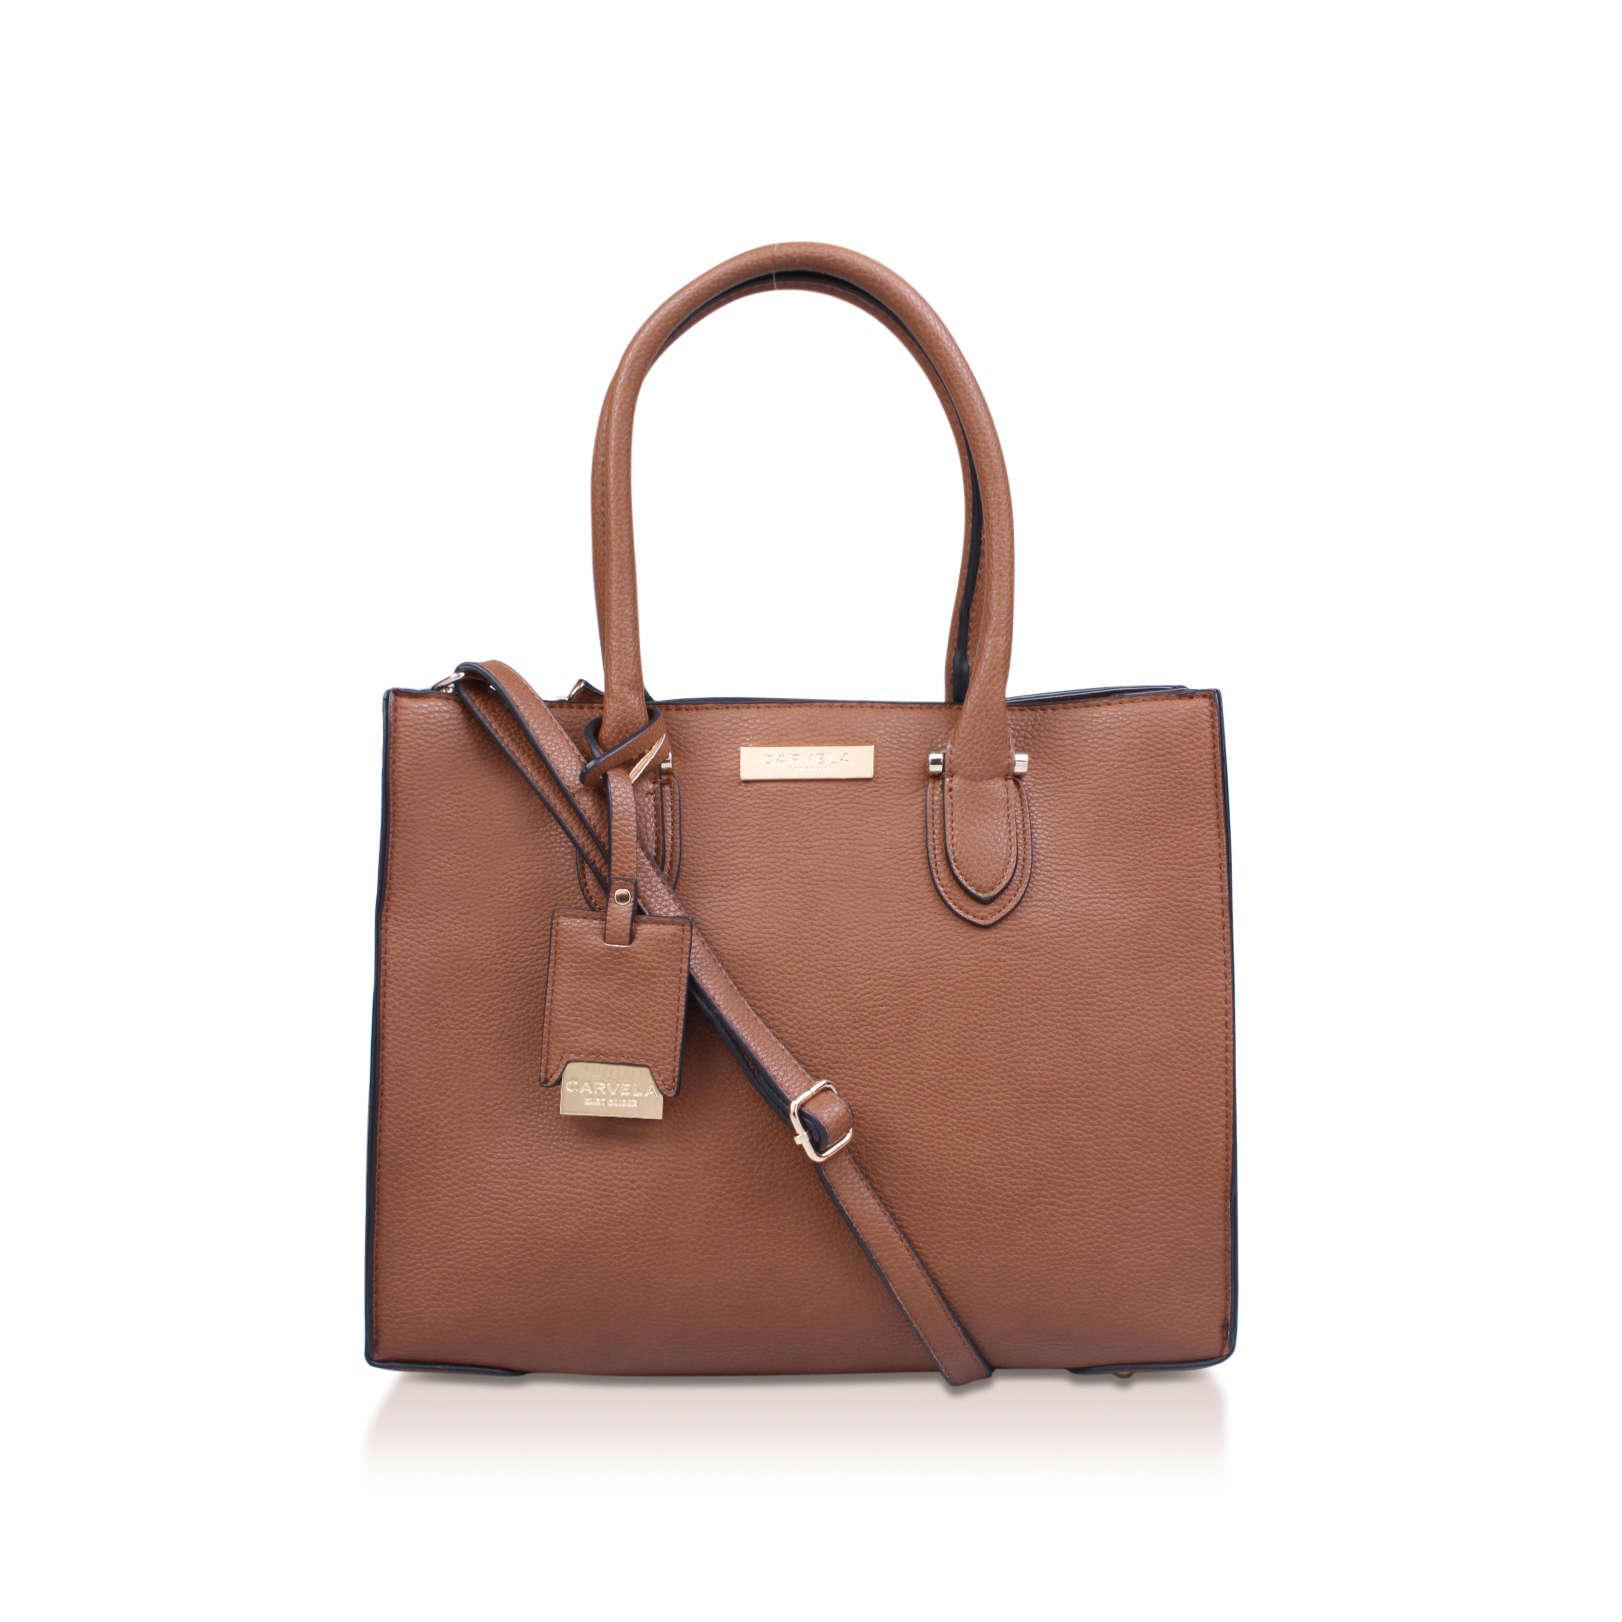 Carvela Kurt Geiger Synthetic Robyn Structured Tote in Tan (Brown)